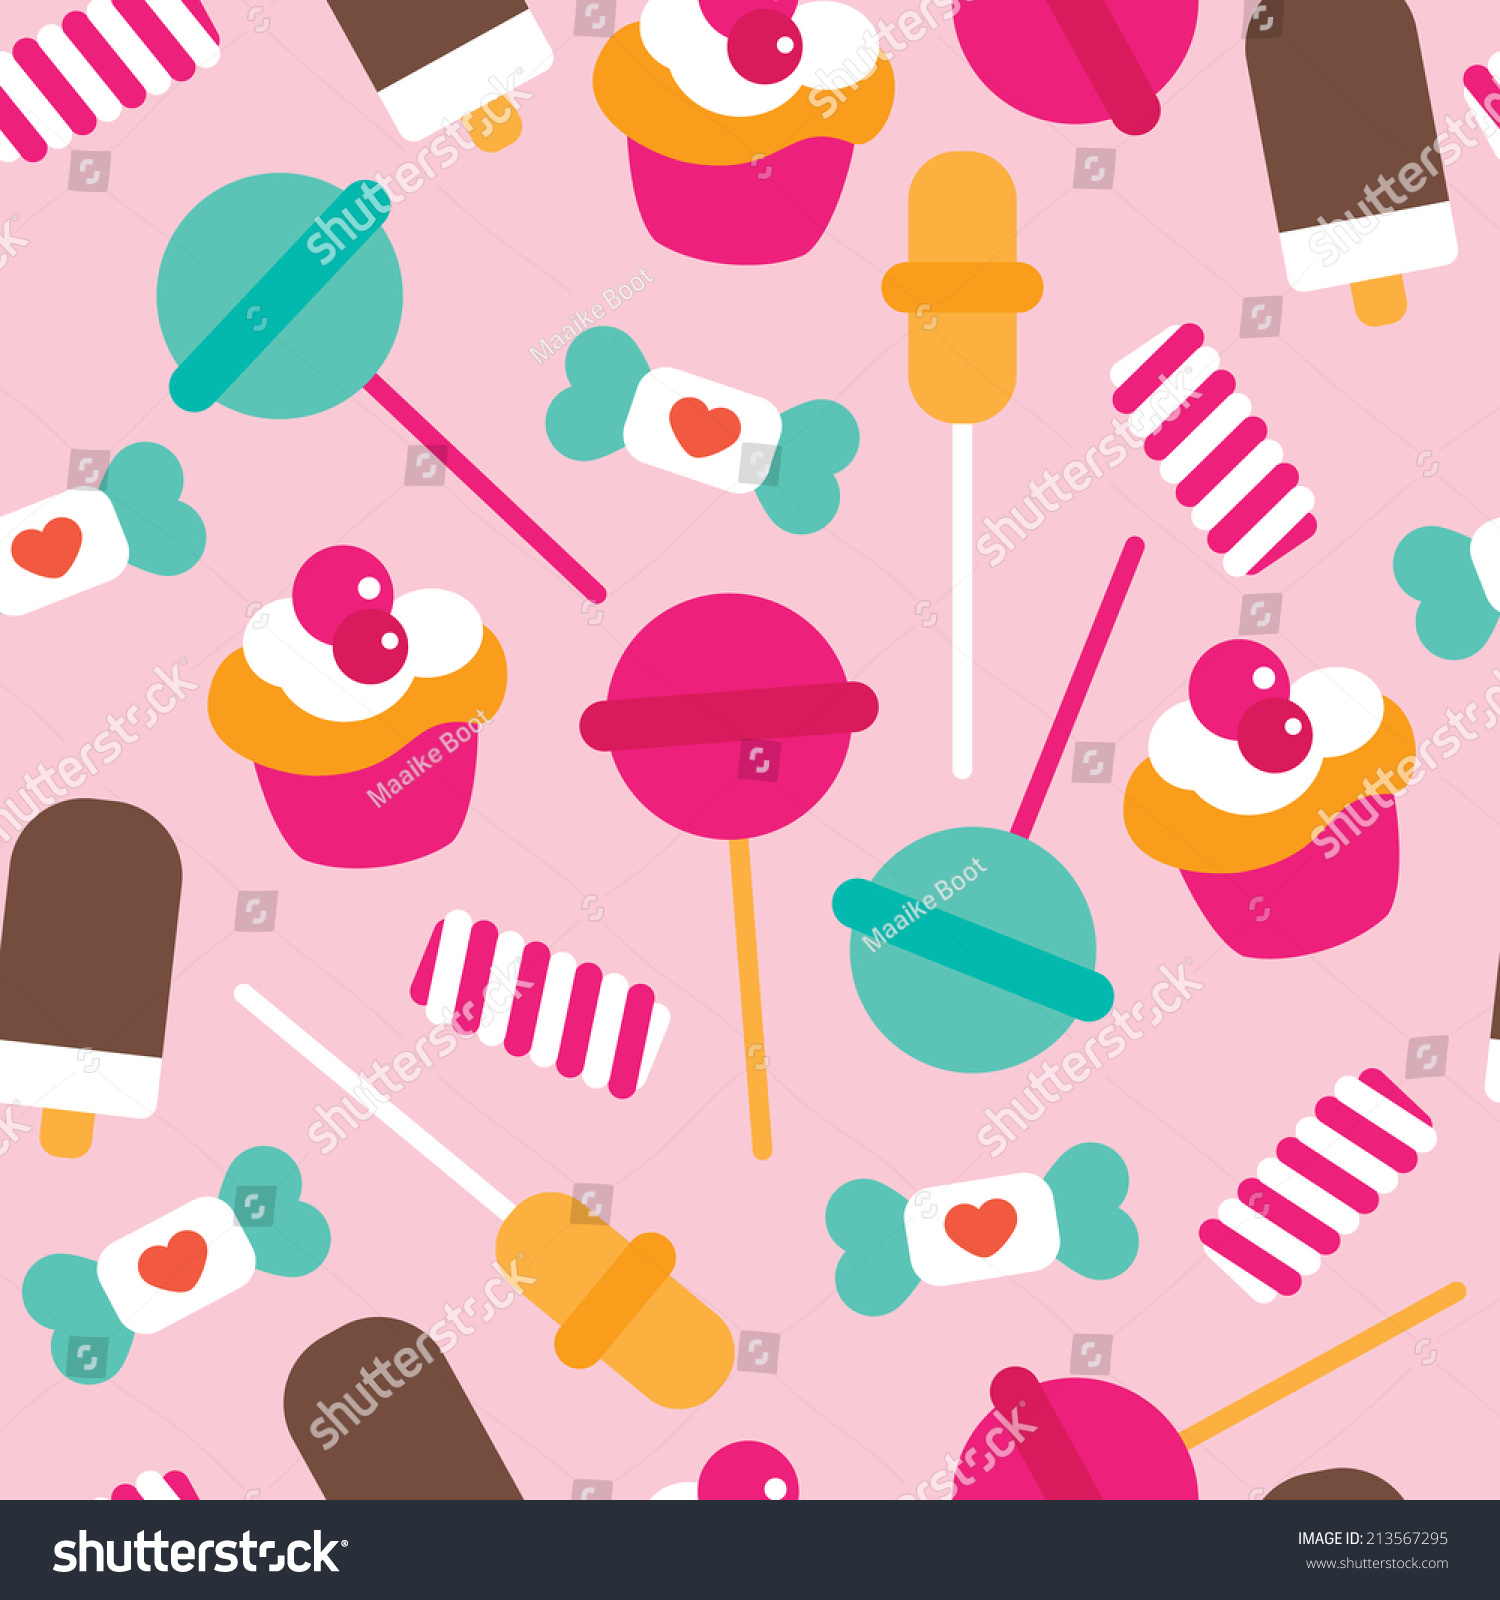 Cute Colorful Ice Cream Seamless Pattern Background: Seamless Candy Lollipop Ice Cream Cupcake Stock Vector